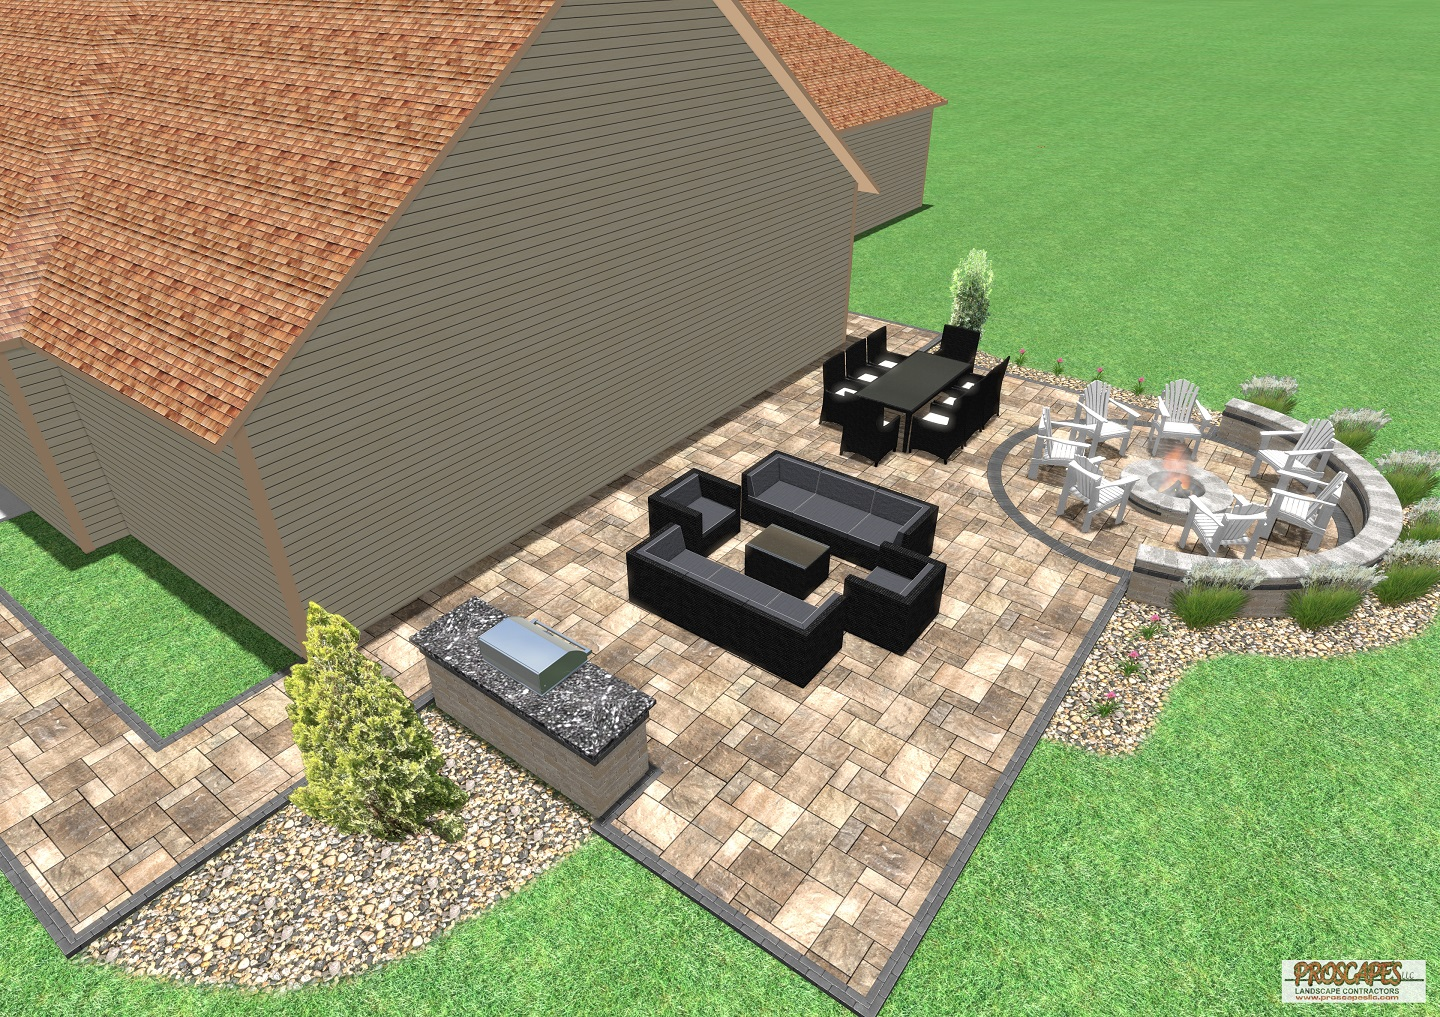 "Approximate price: $60,000 - An entertainer's paradise, this paver patio is designed for large gatherings. This outdoor ""great room"" is single expansive space for cooking in the outdoor kitchen, dining, relaxing, and sharing stories around the fire pit. A contrasting paver border encloses the patio and walkway, and defines the fire pit area and walkway. The project also included a professional grill and landscape lighting."